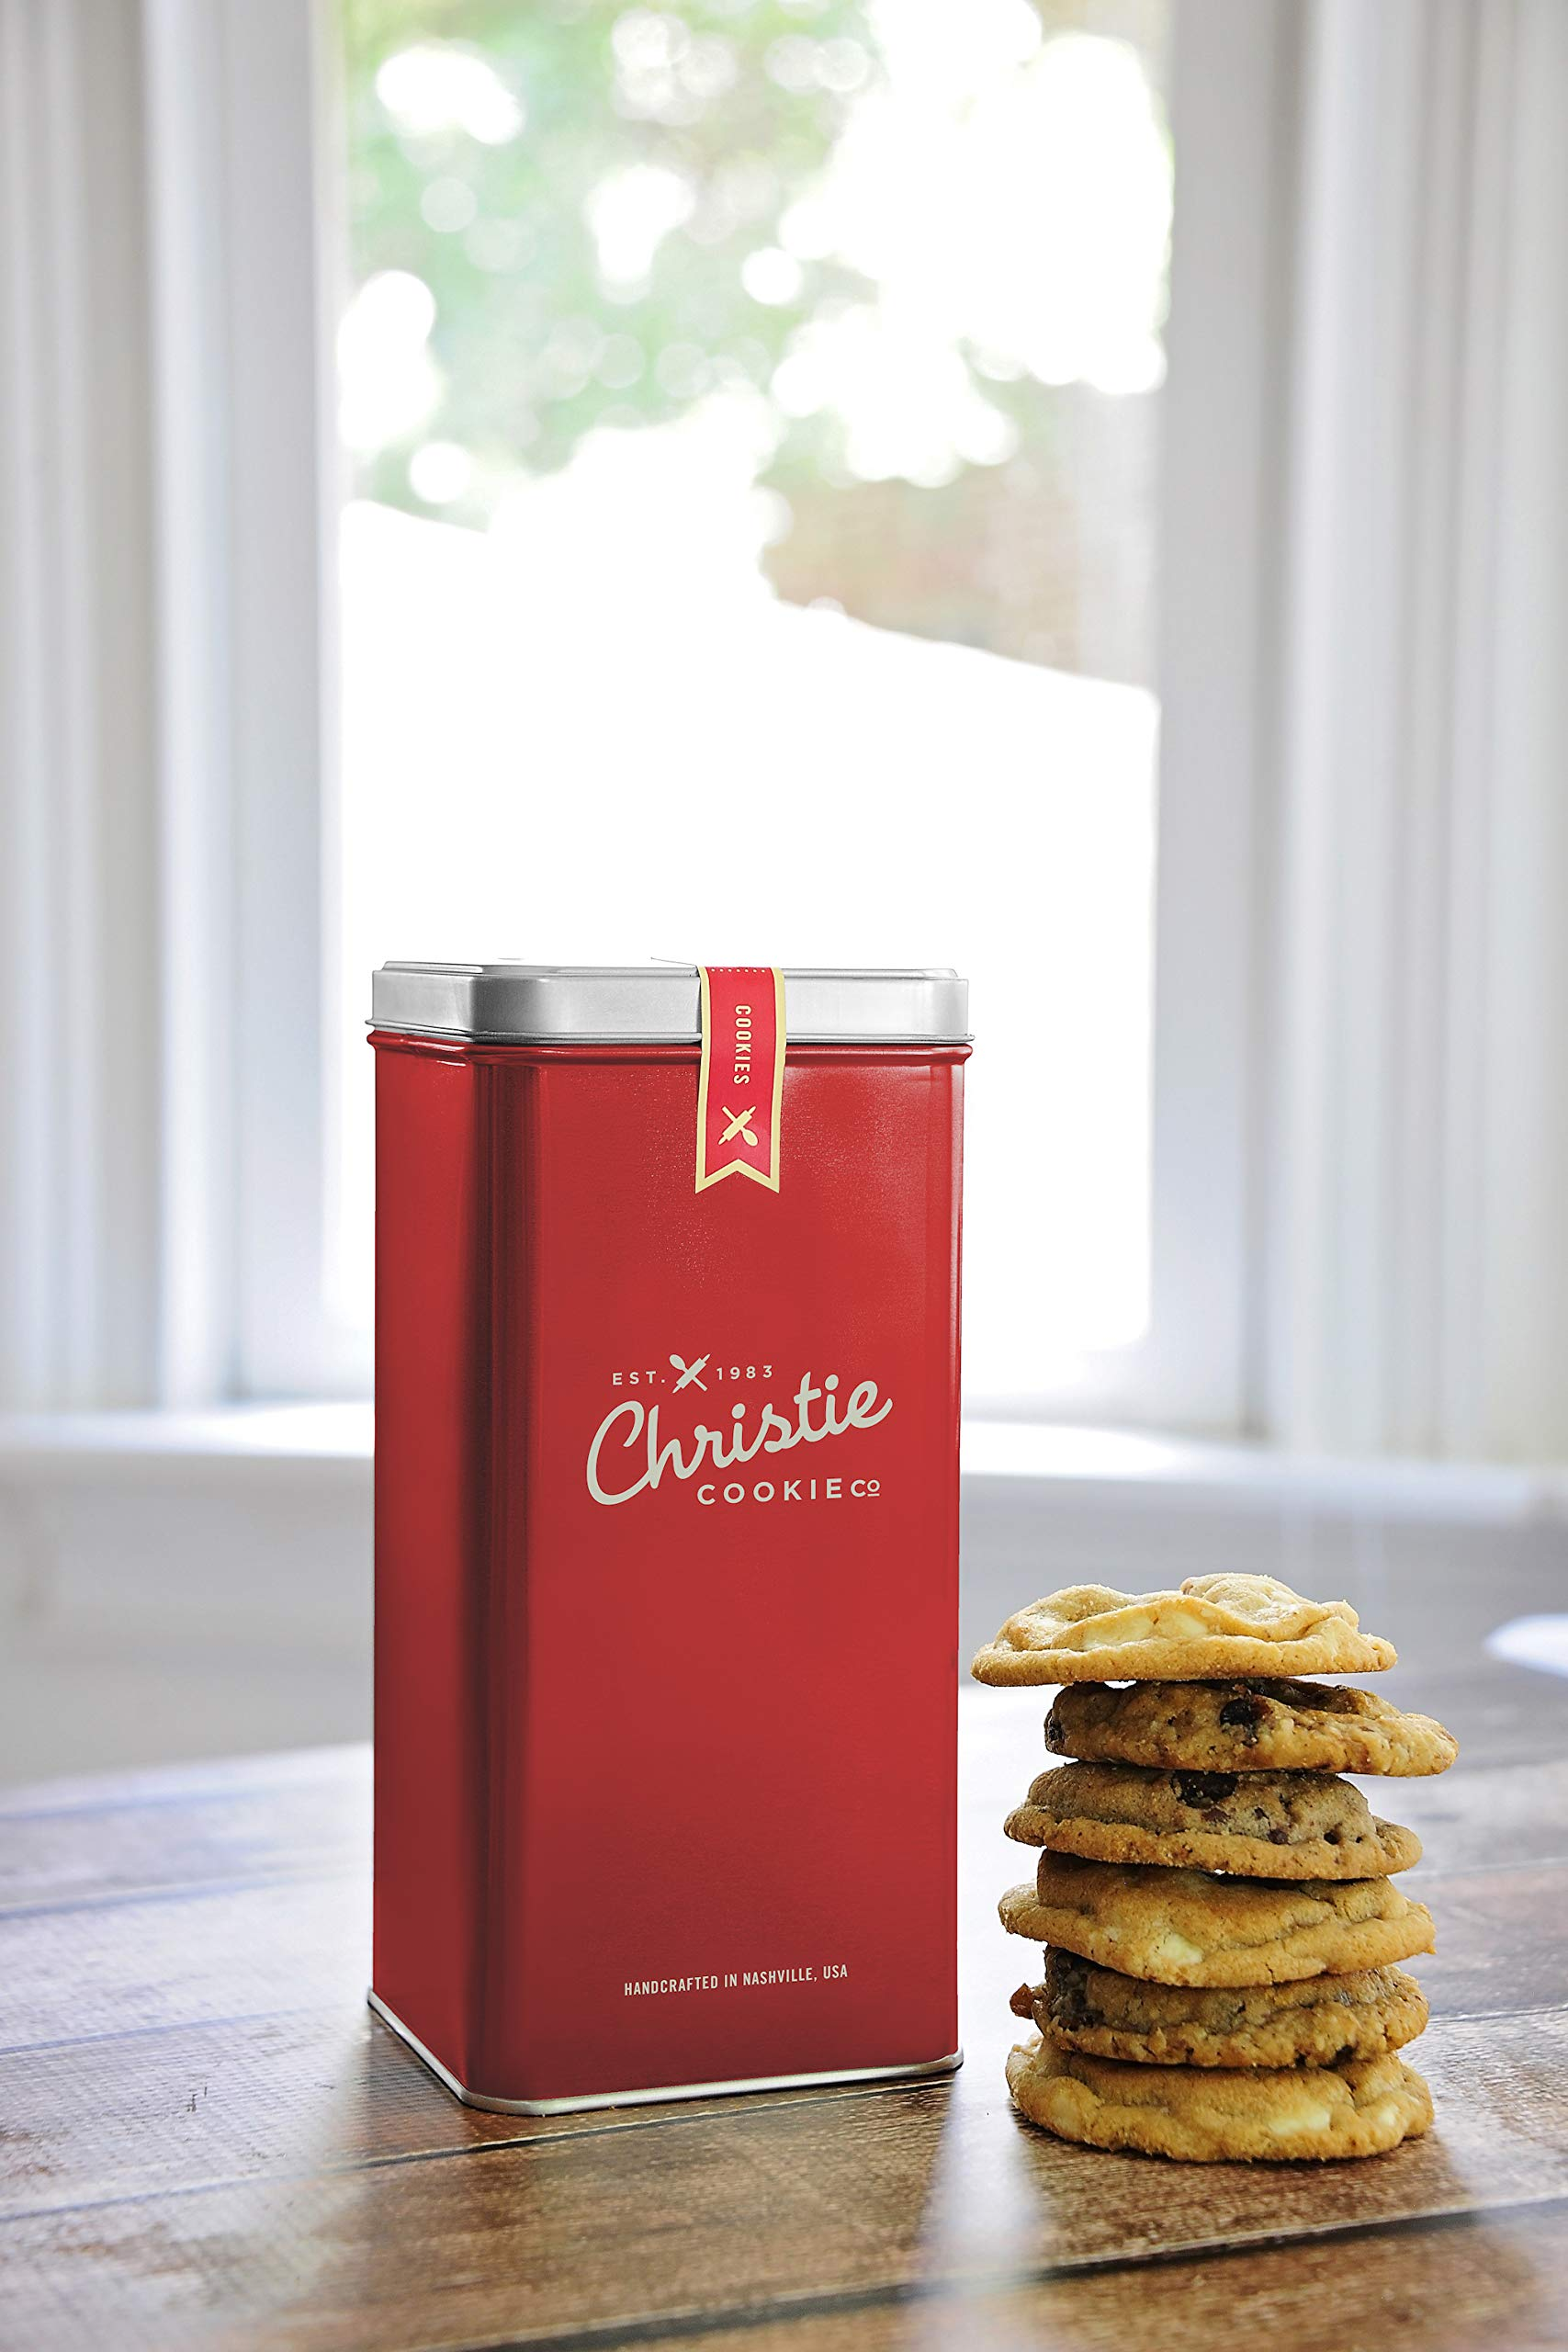 Christie Cookies, Gourmet Assorted Cookies, 12 Fresh-Baked Cookies in Red Tin, No Added Preservatives, 100% Real Butter, Holiday & Corporate Gift Tin, Birthday Gift Idea for Men & Women by Christie Cookie Co. (Image #1)